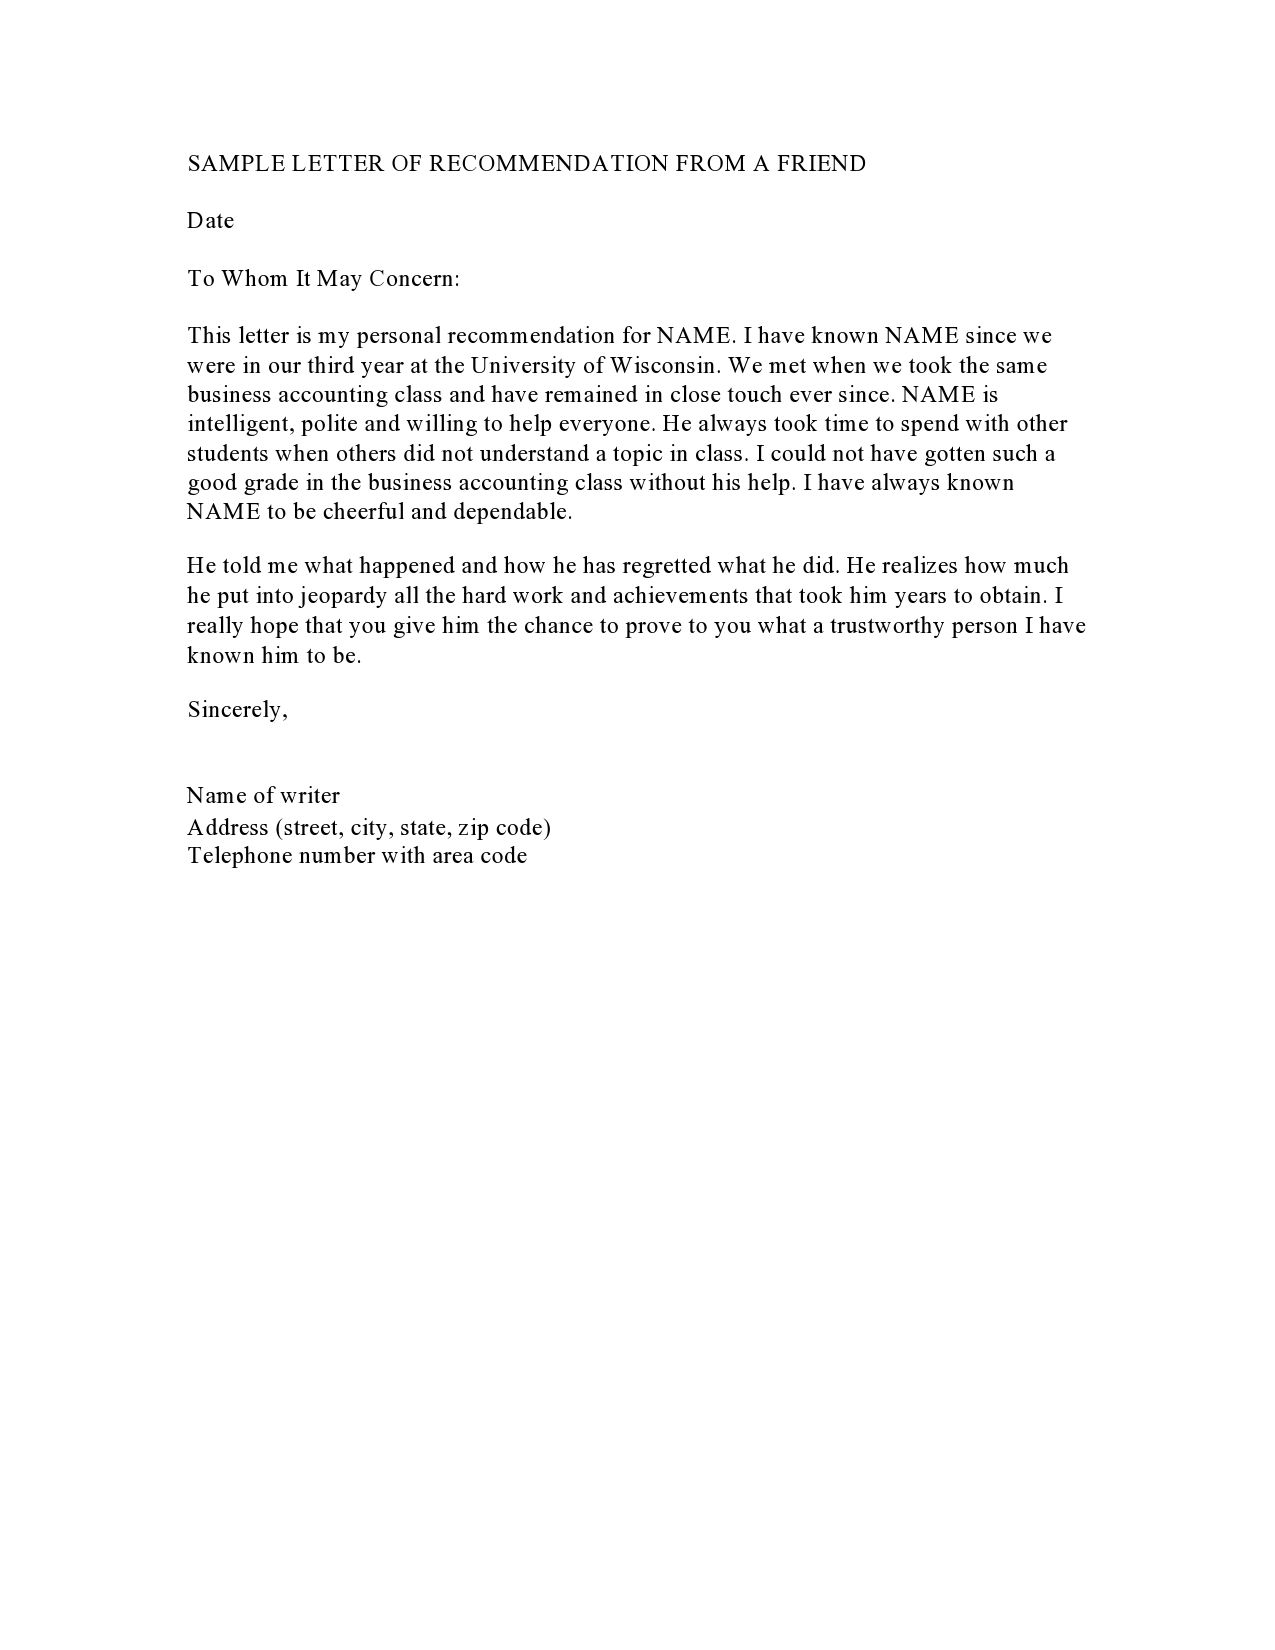 003 Impressive Free Reference Letter Template For Friend Inspiration Full